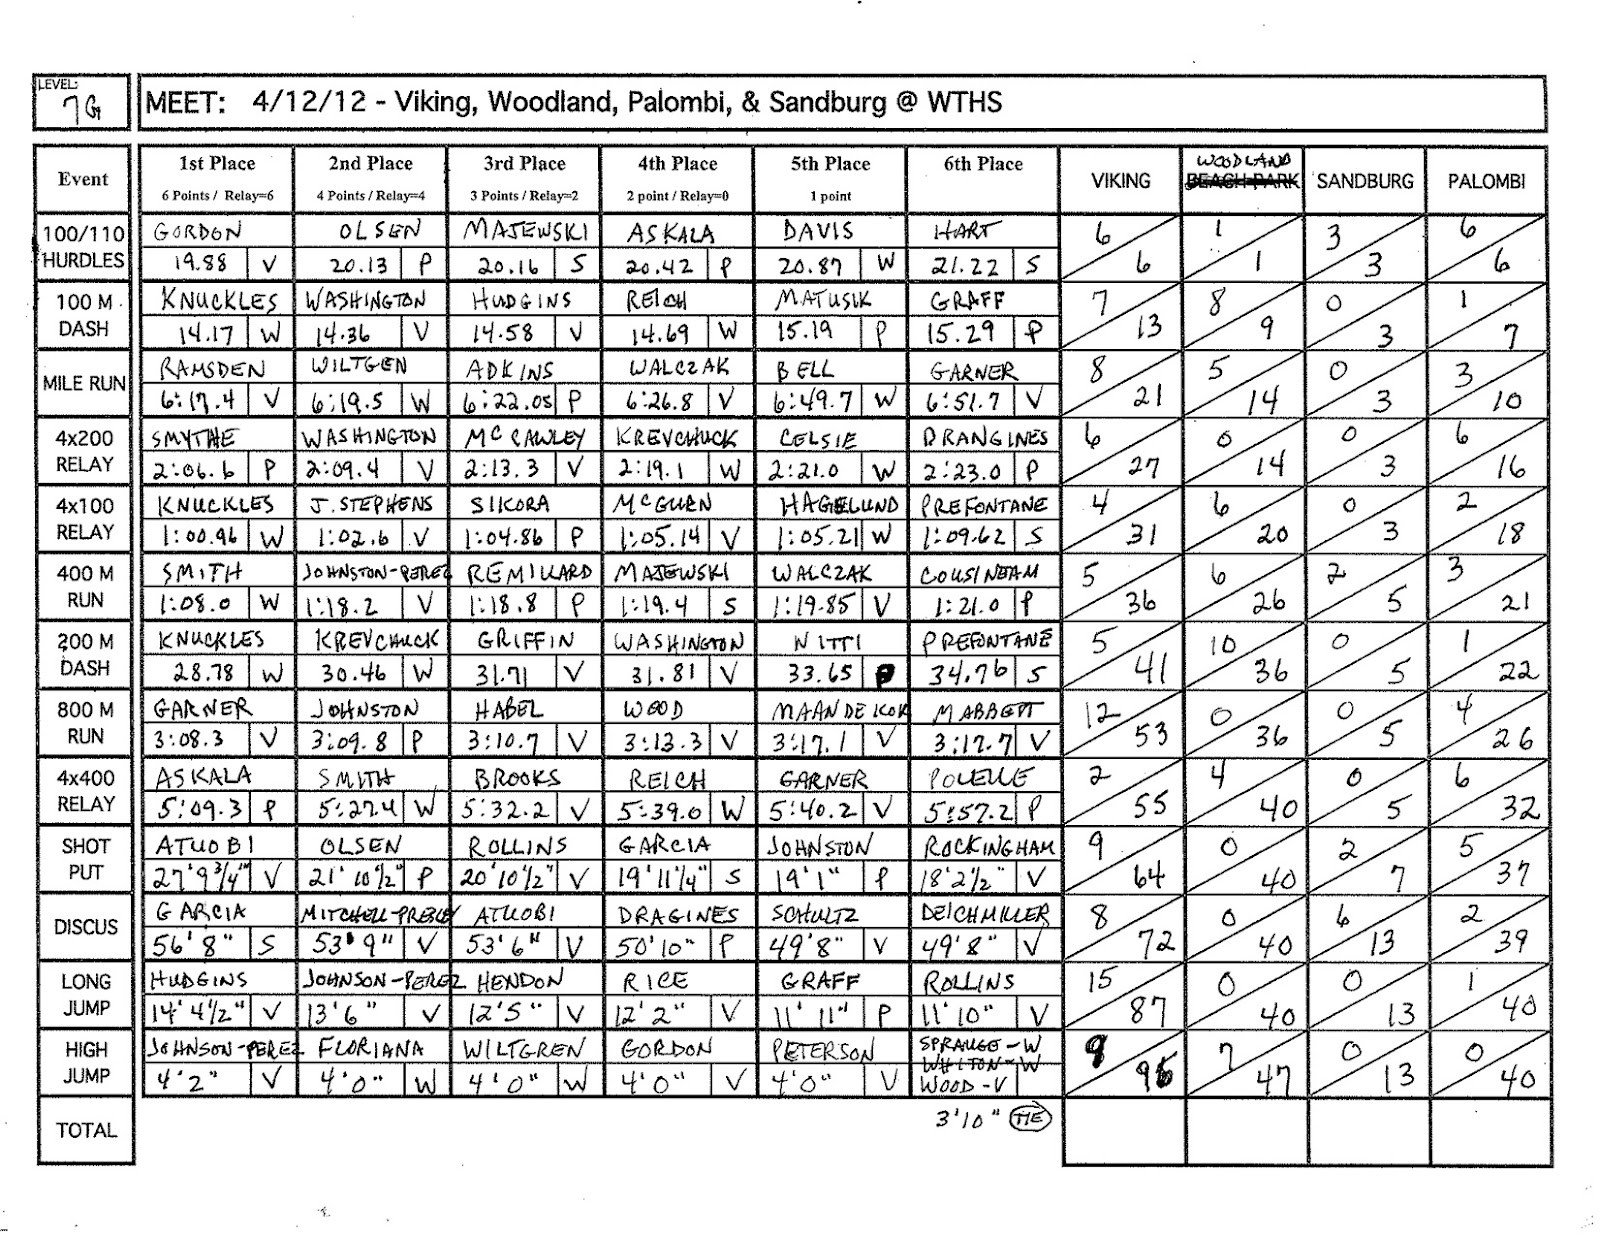 Track Meet Scoring Spreadsheet Viking Track and Field April 2012